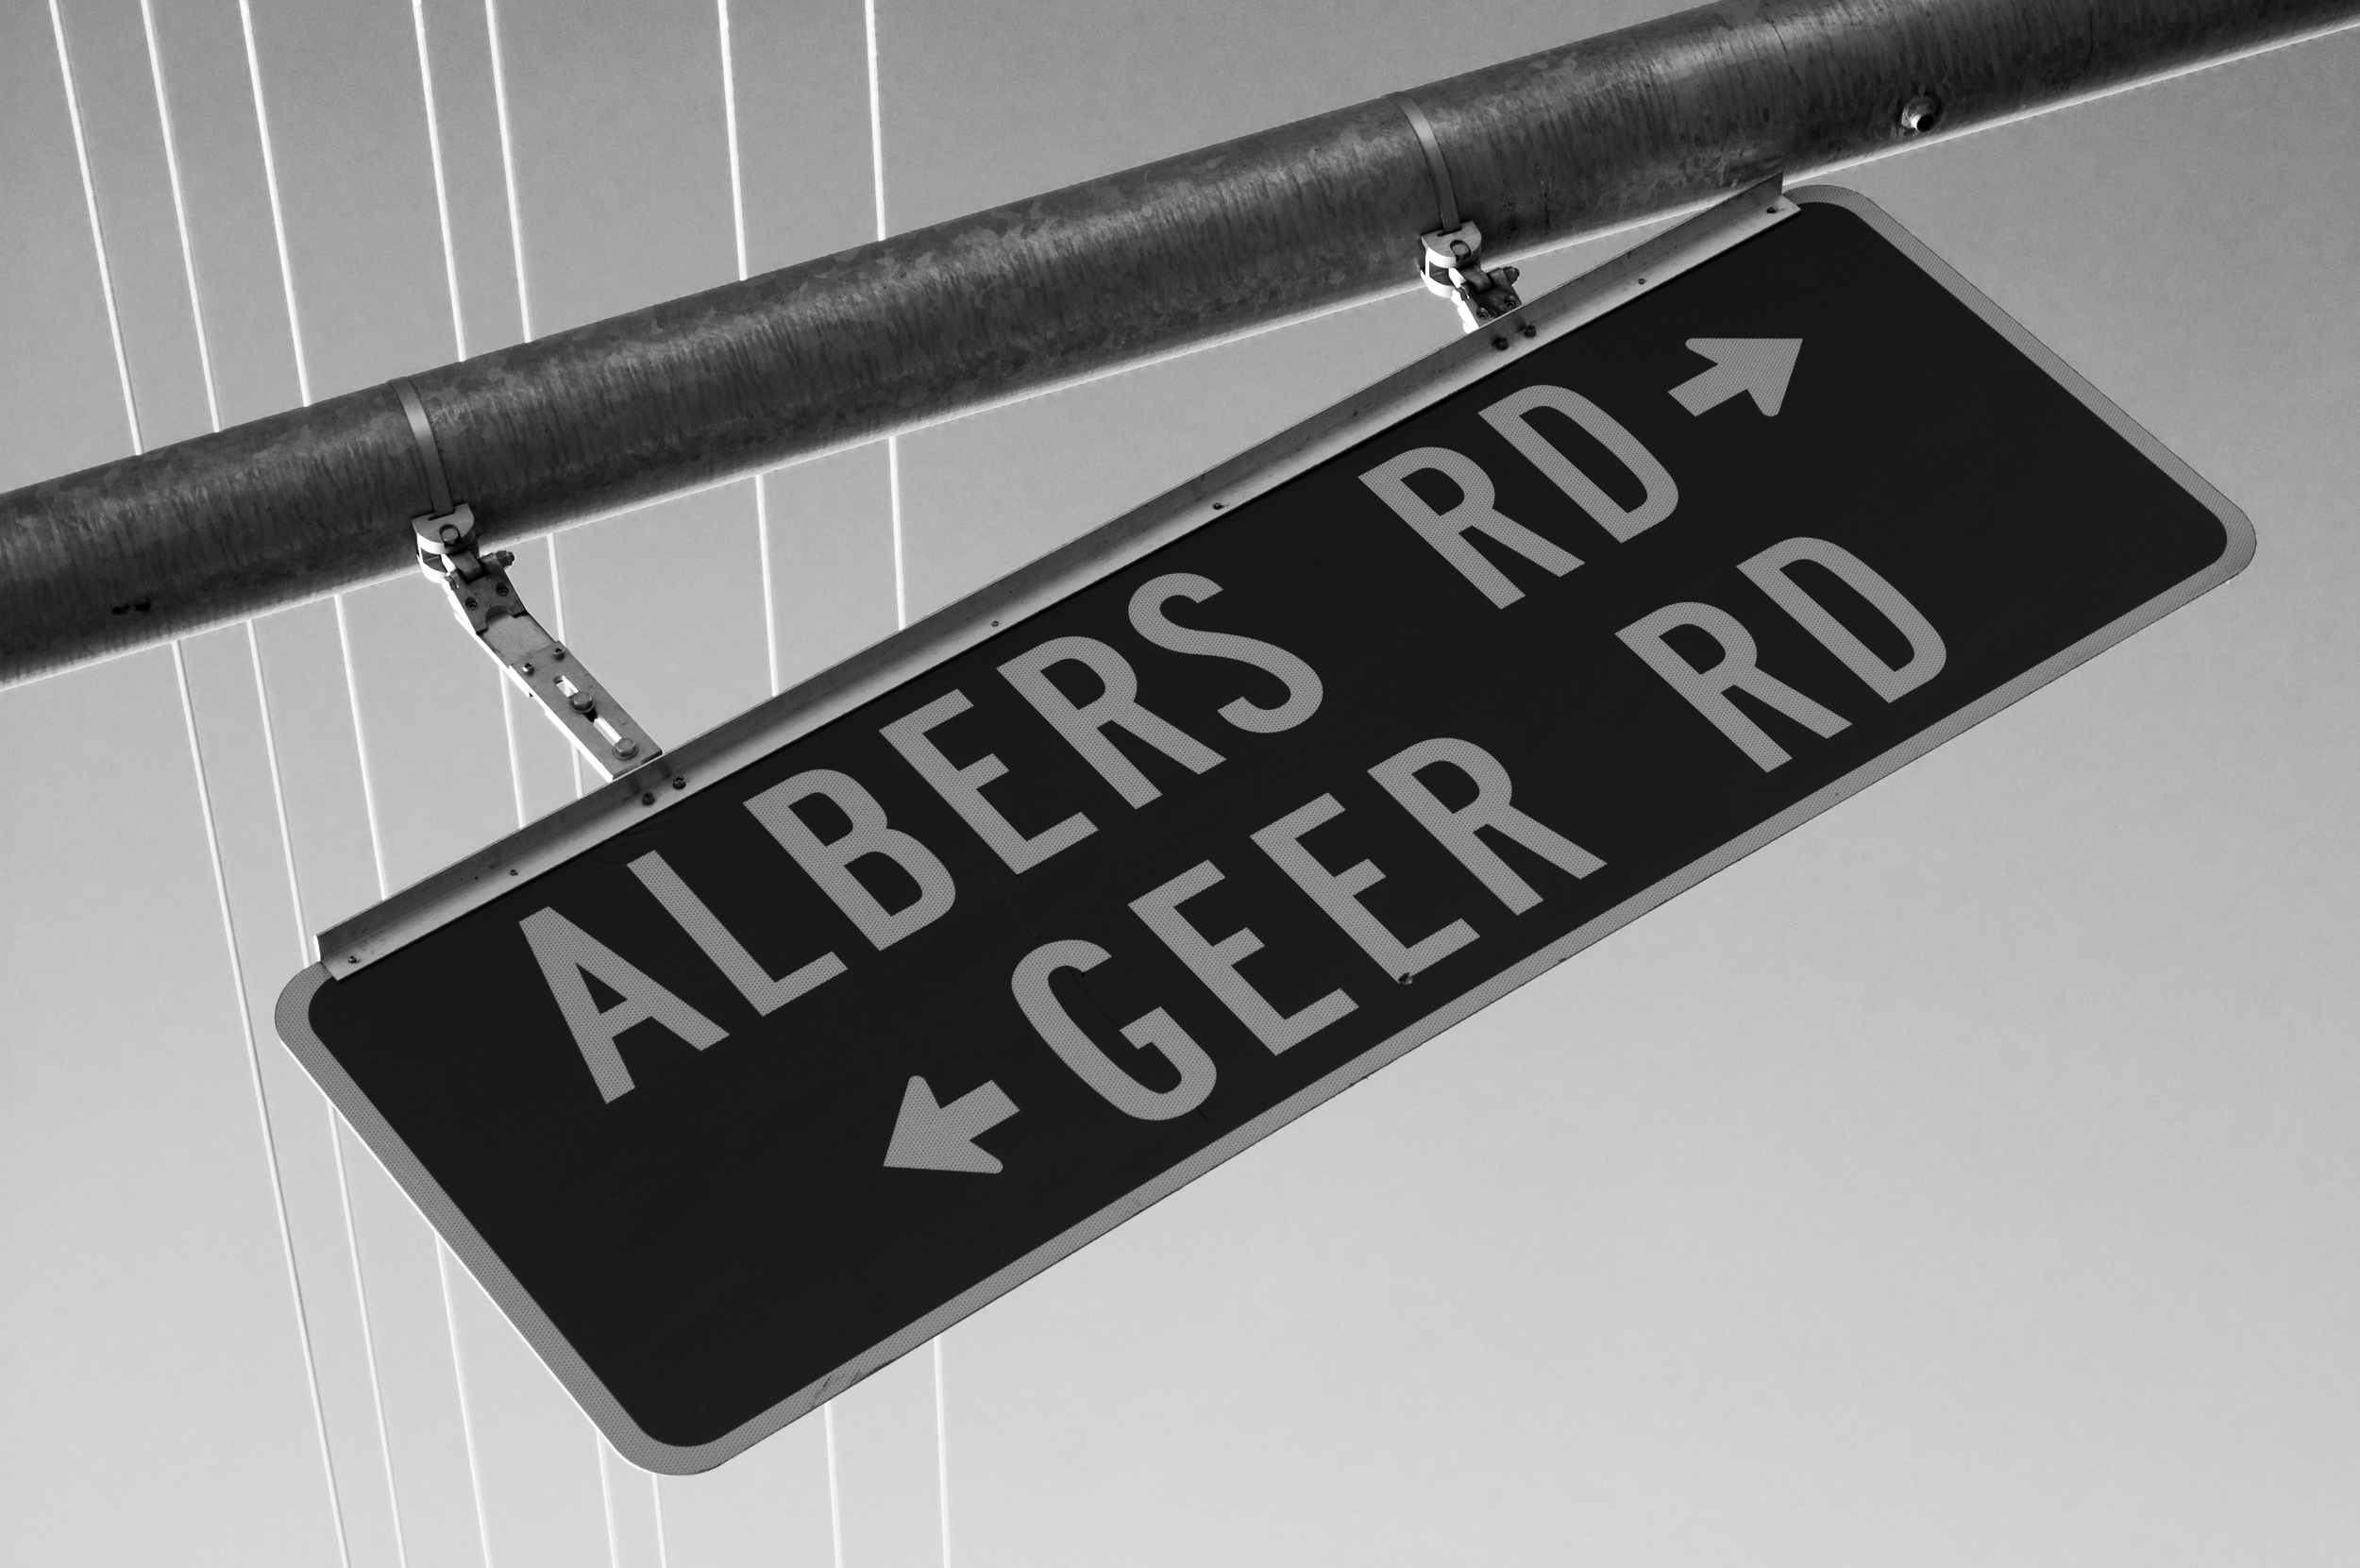 Albers Turns Into Geer